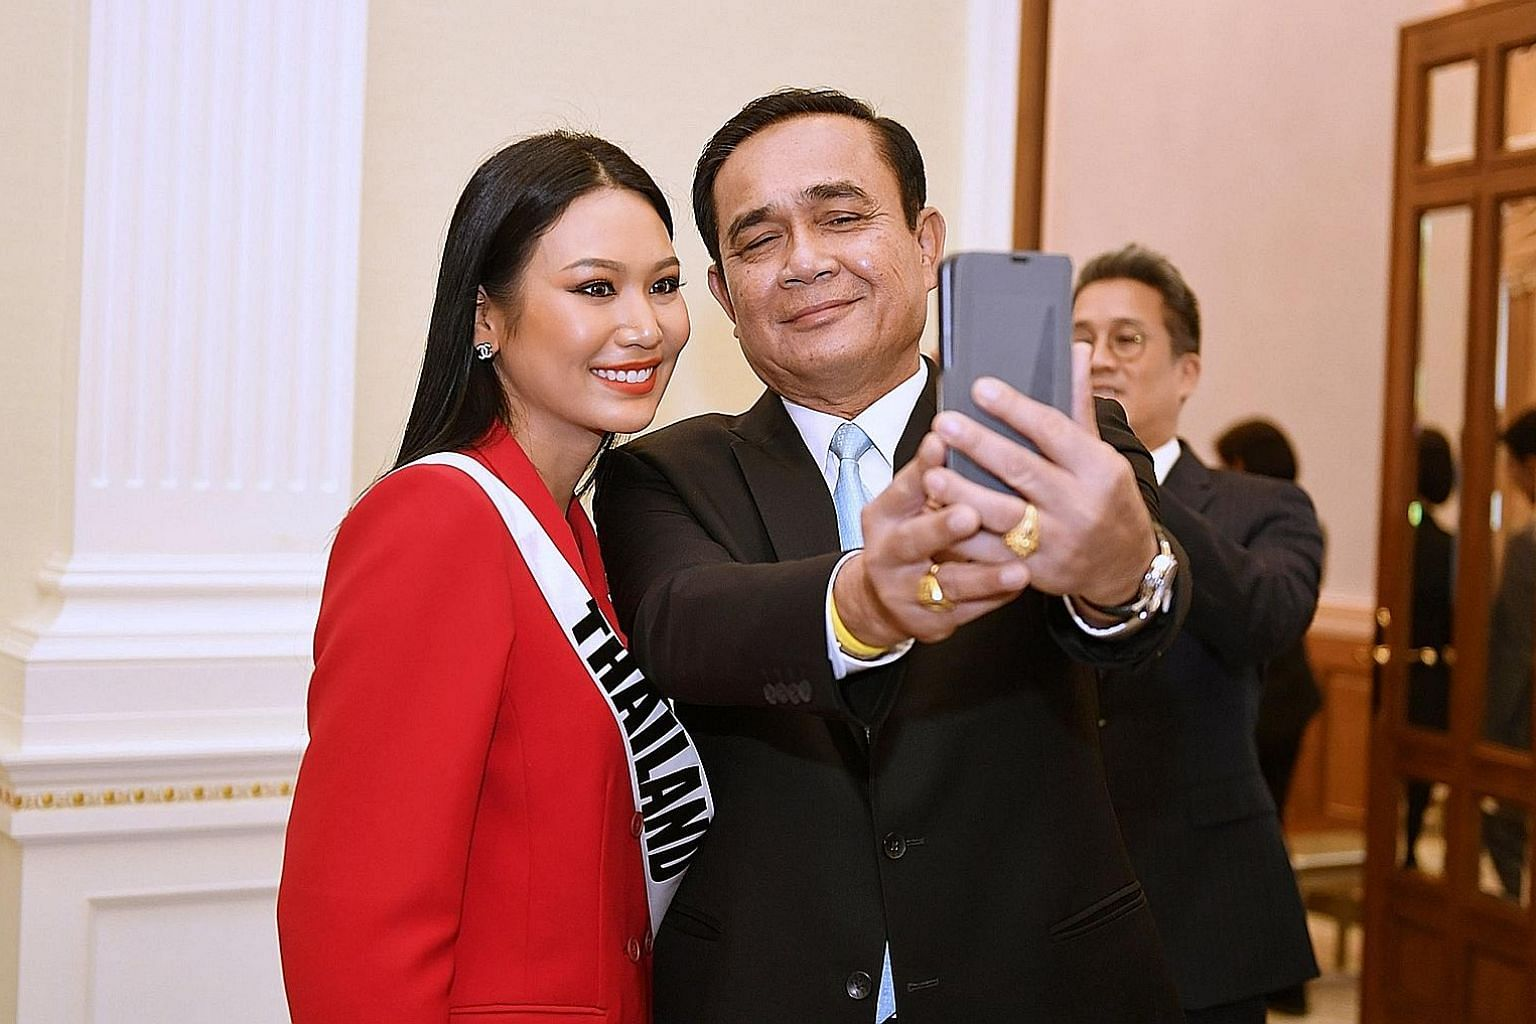 Thai Prime Minister Prayut Chan-o-cha taking a selfie with Thailand's Miss Universe 2018 contestant Sophida Kanchanarin after a meeting at Government House in Bangkok on Tuesday. Some politicians say having Mr Chan-o-cha return as premier would give